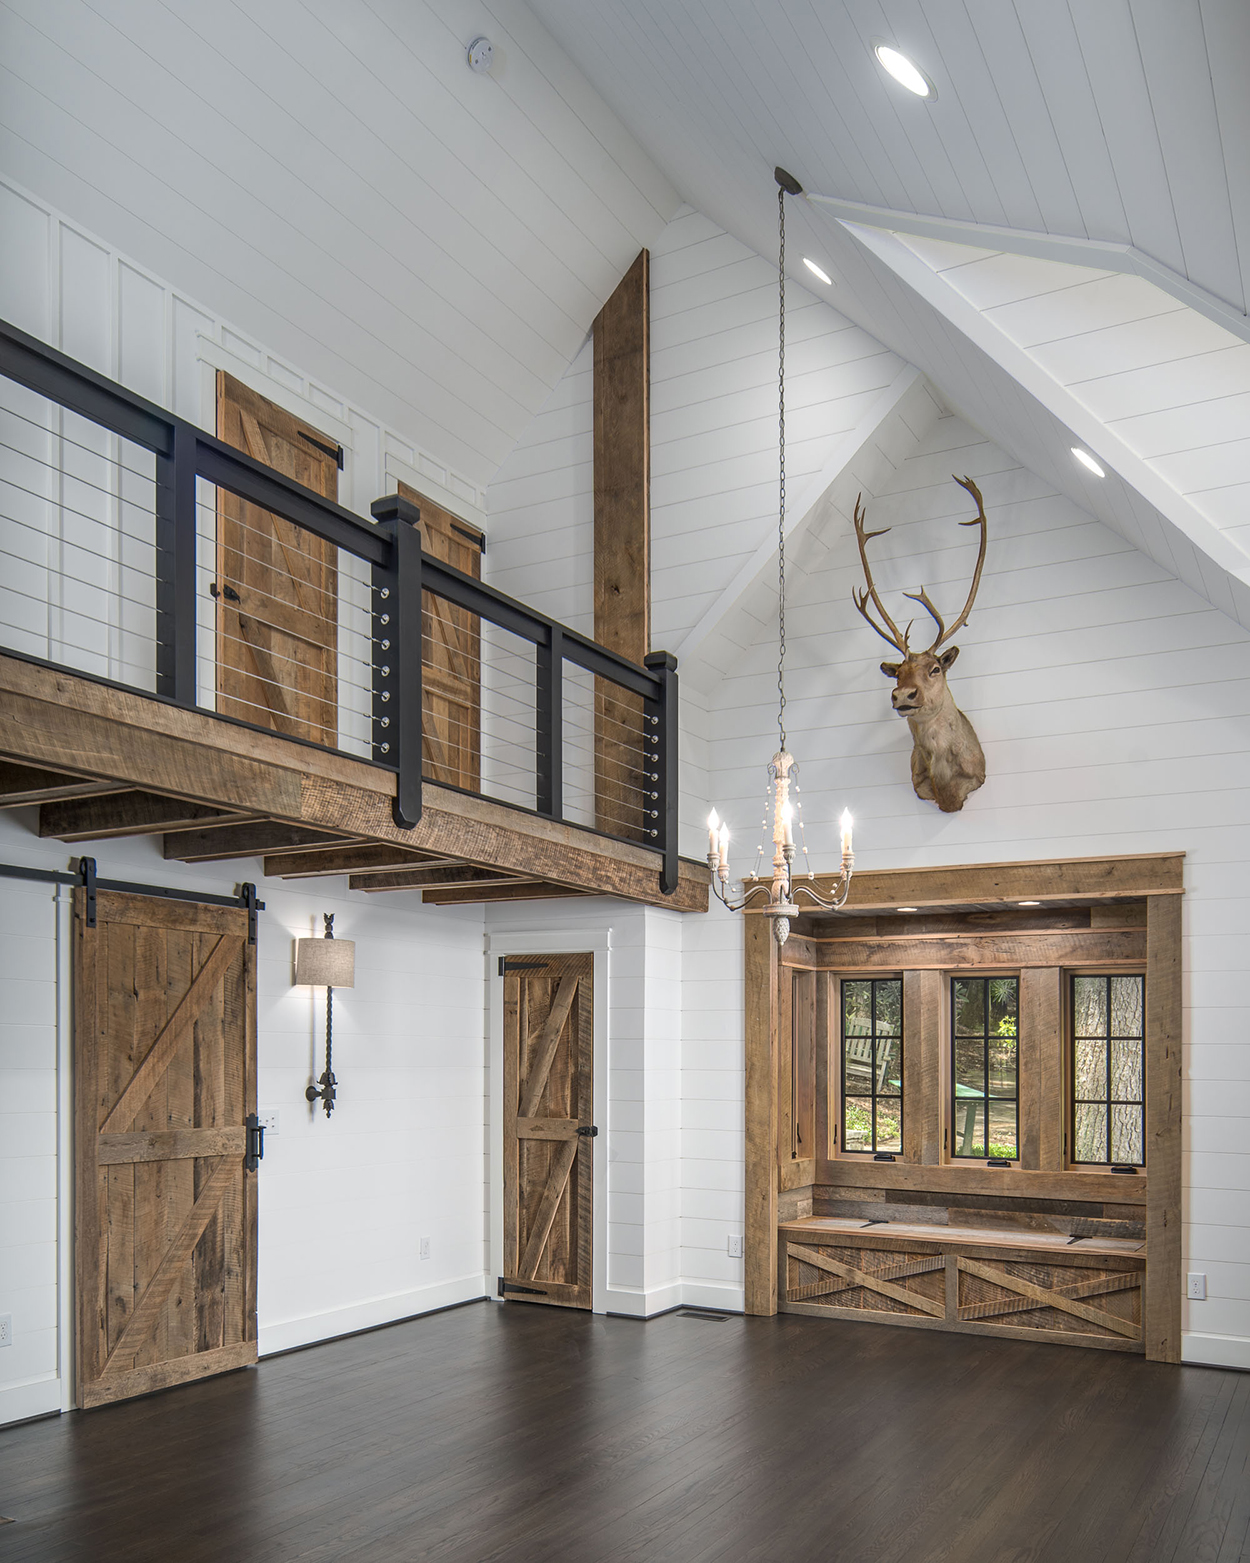 3 Things to Keep in Mind About a Historic Renovation